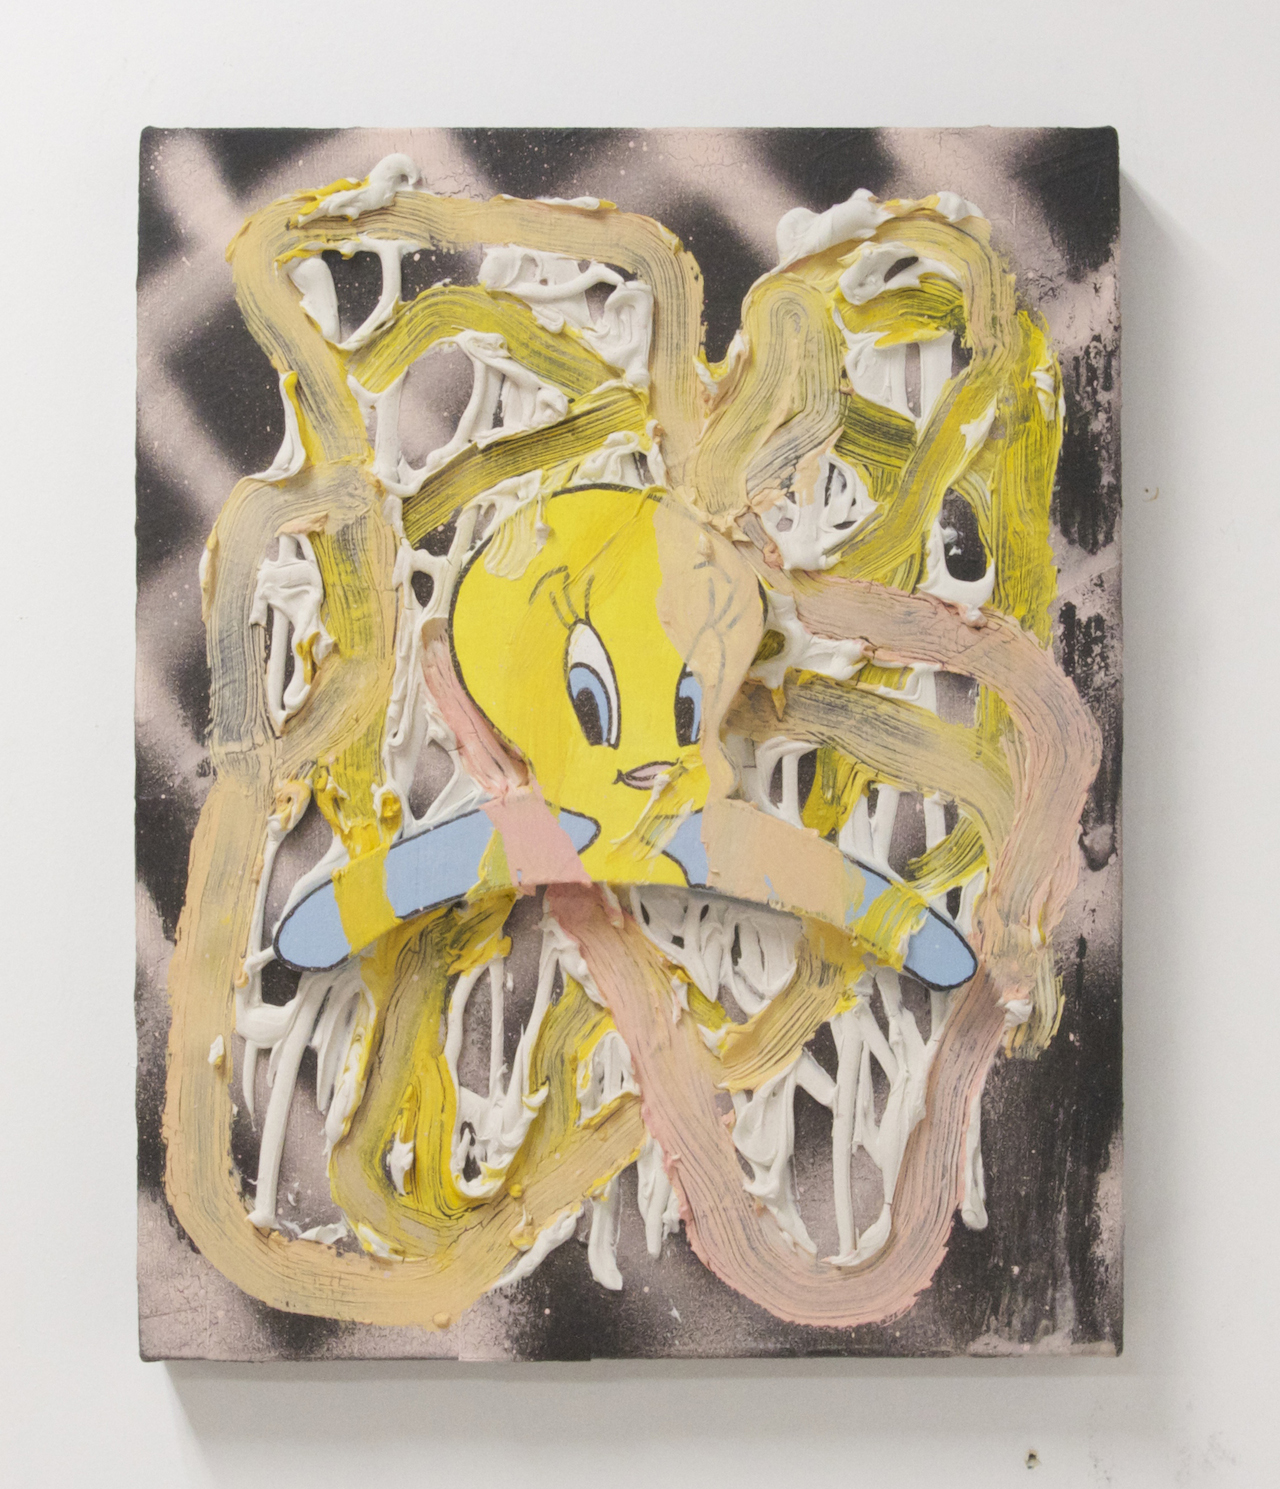 Rajewski's humor and perverse attraction/repulsion with popular culture come through in Tweety Bird, Acrylic, wood, oil, spray paint and caulk on canvas, 2014